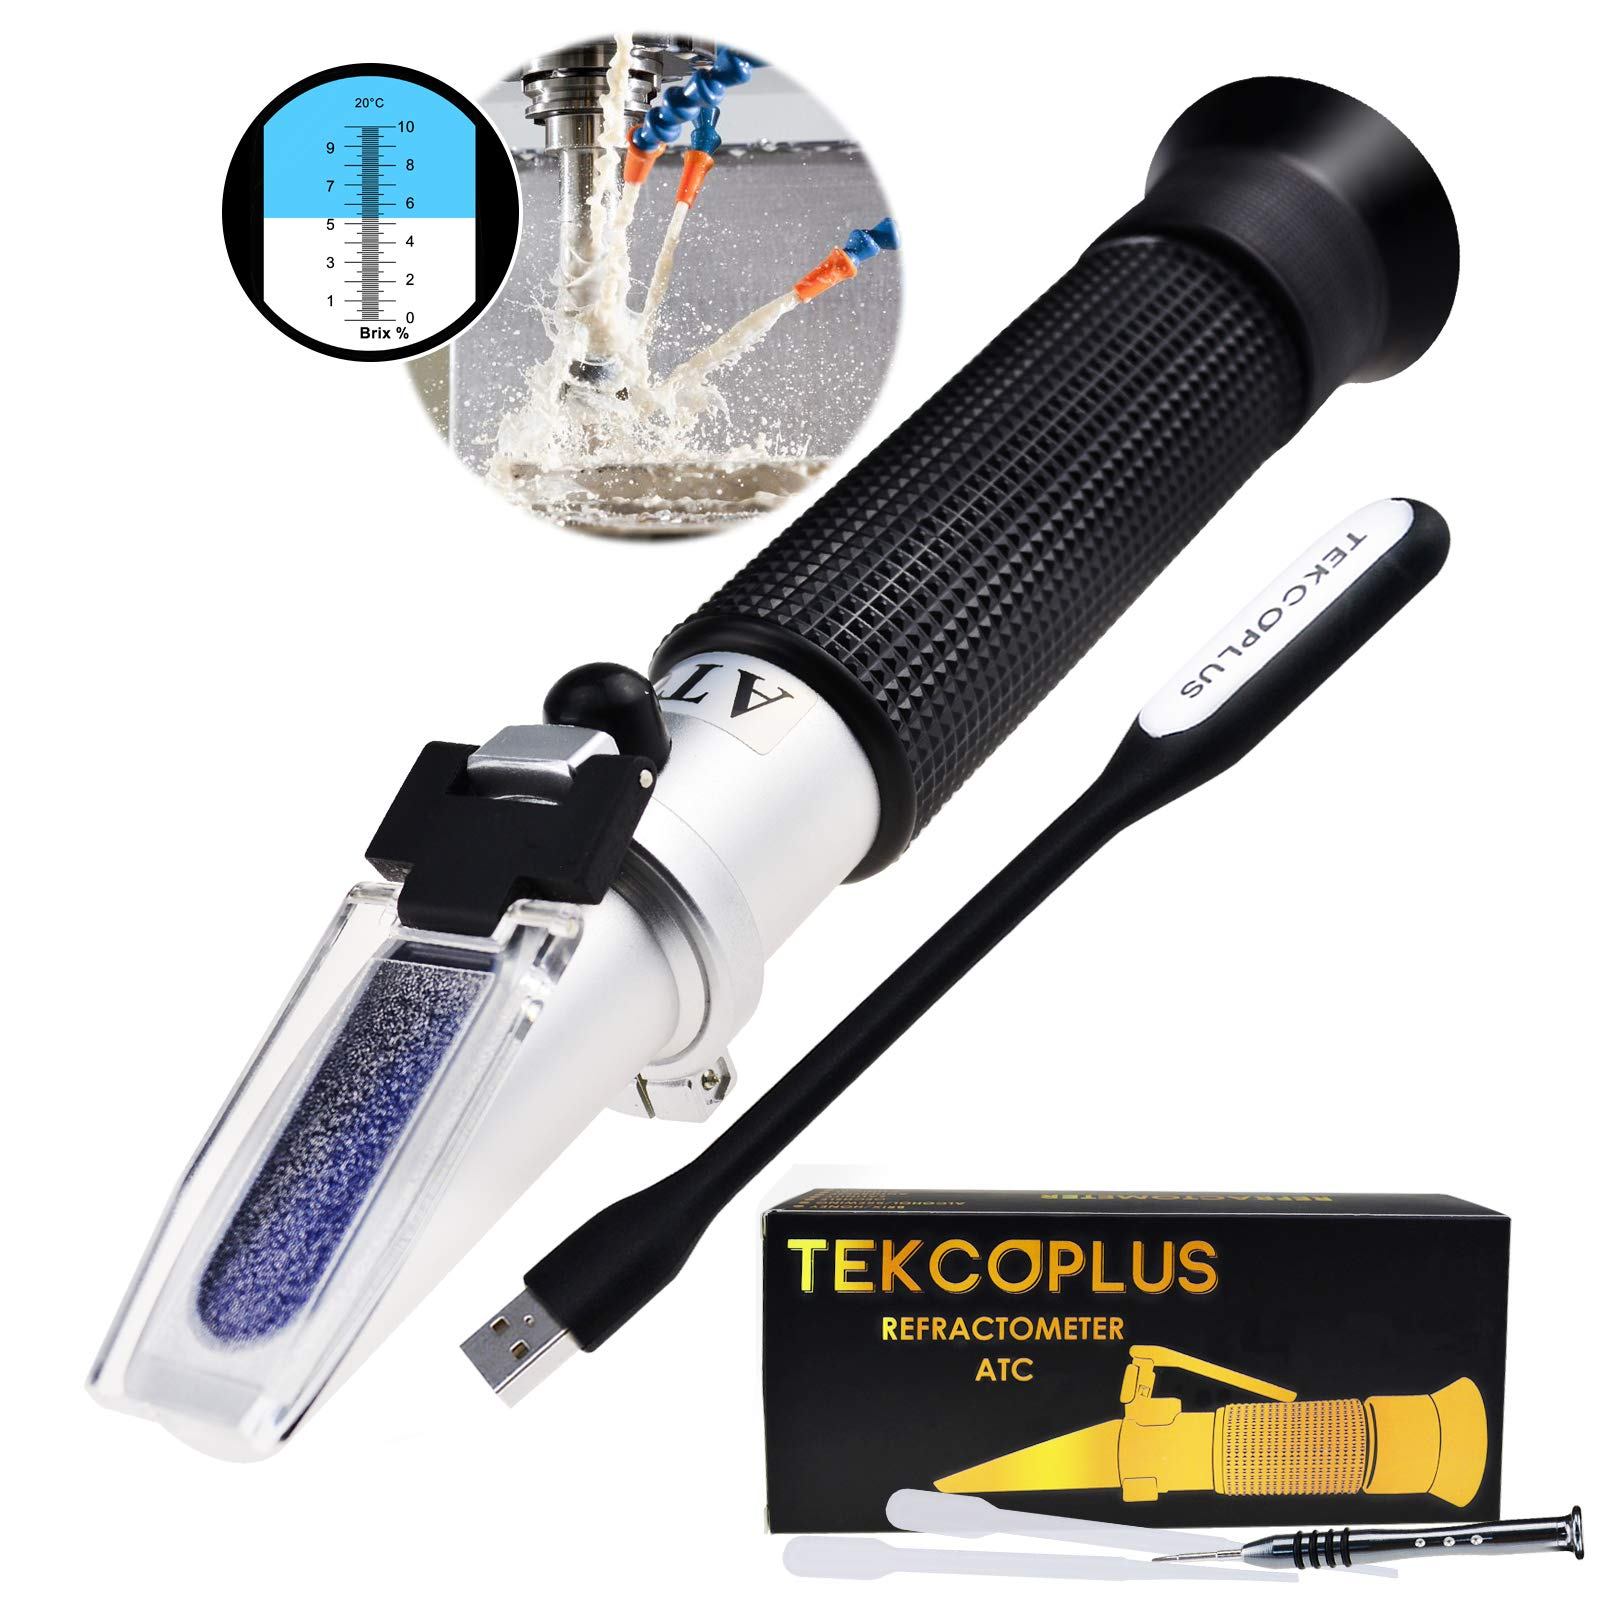 Brix Refractometer Range 0-10% Brix Testing Synthetic Machining Coolants, Maple sap, Cutting Liquid, CNC, for Maple Syrup Makers, Low-Concentrated Sugar Solutions, Tea, ATC +LED Light & pipettes by TekcoPlus